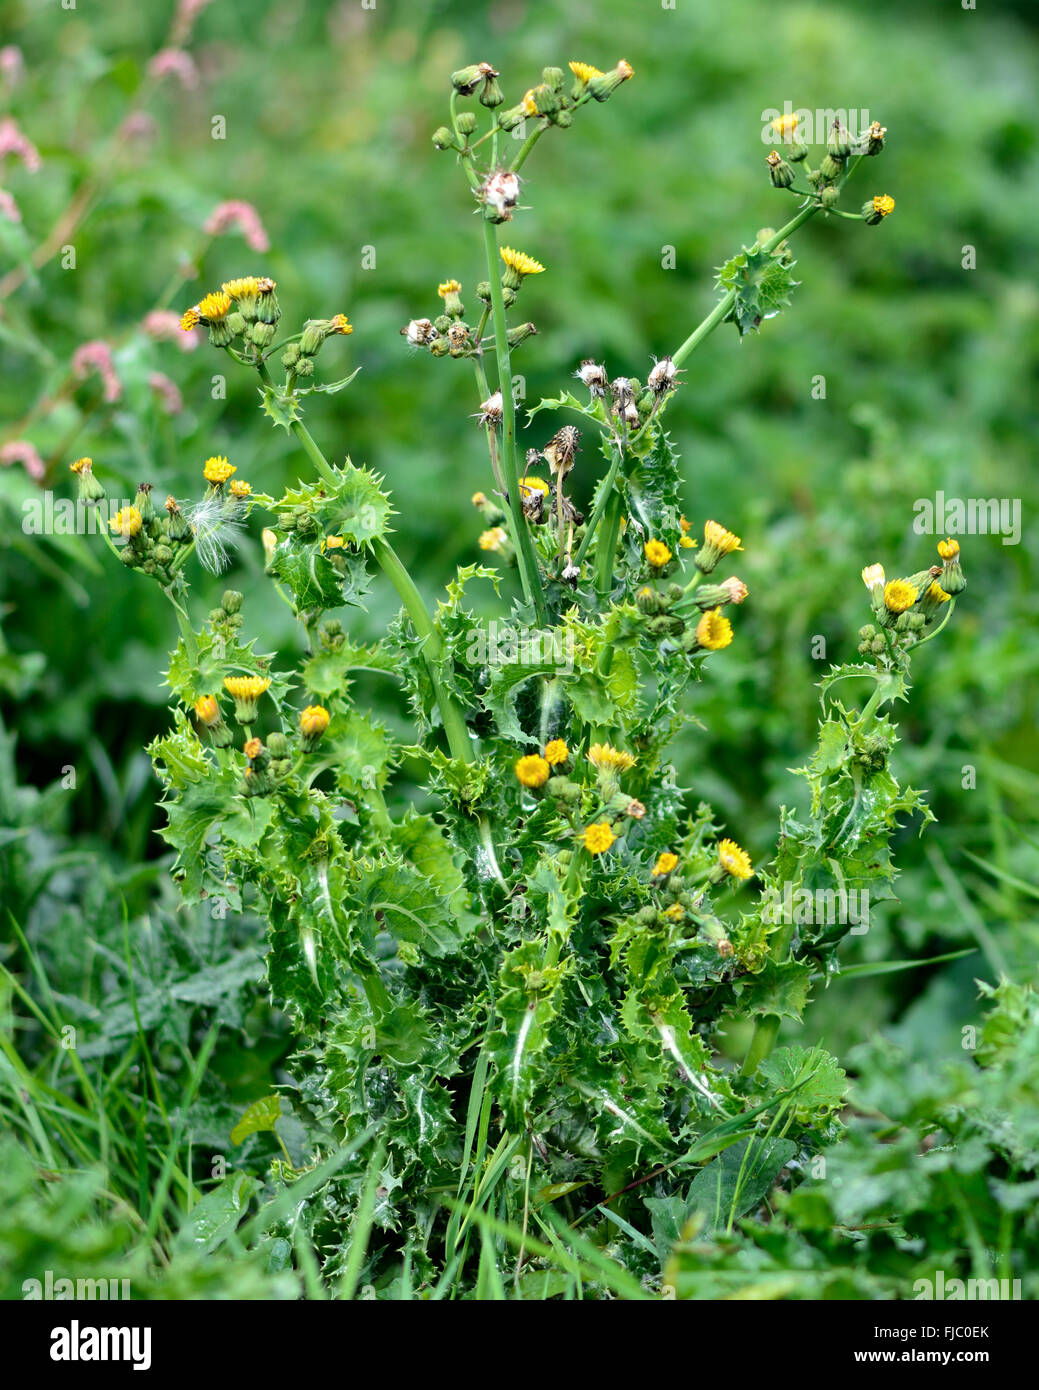 Prickly Sow Thistle Sonchus Asper Prickly Plant In The Daisy